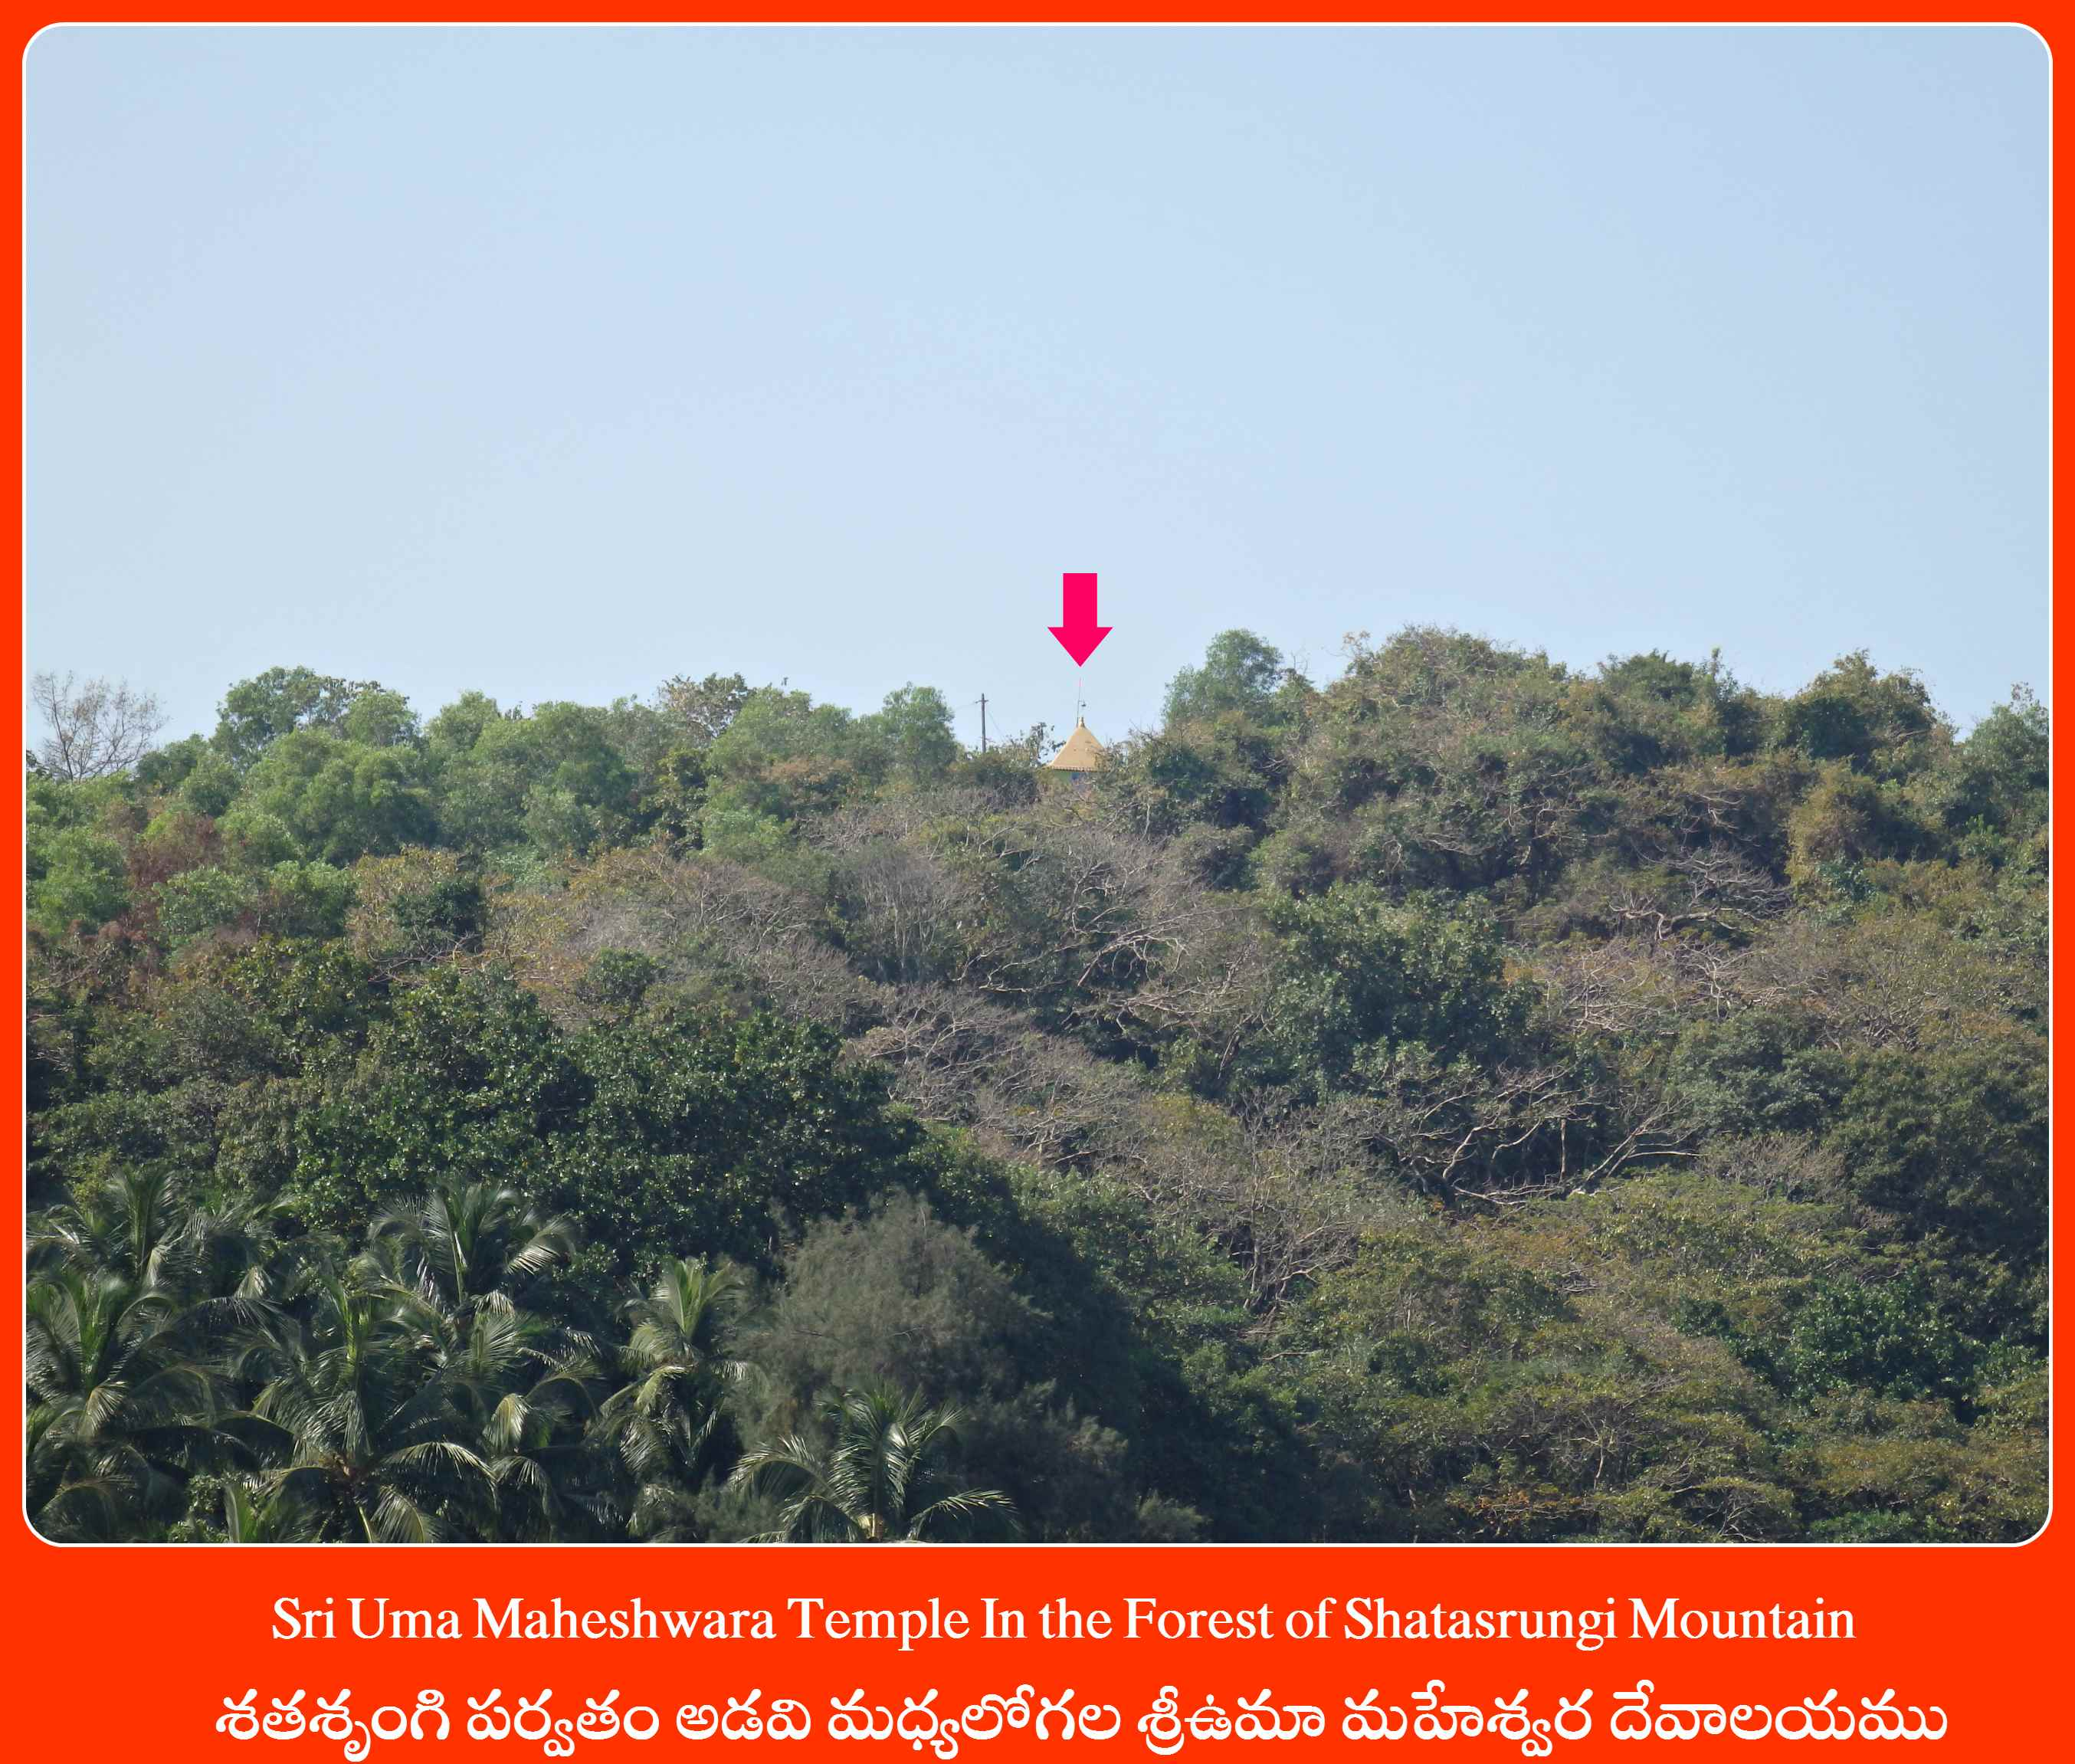 Sri Uma Maheshwara Temple In the Forest of Shatasrungi Mountain